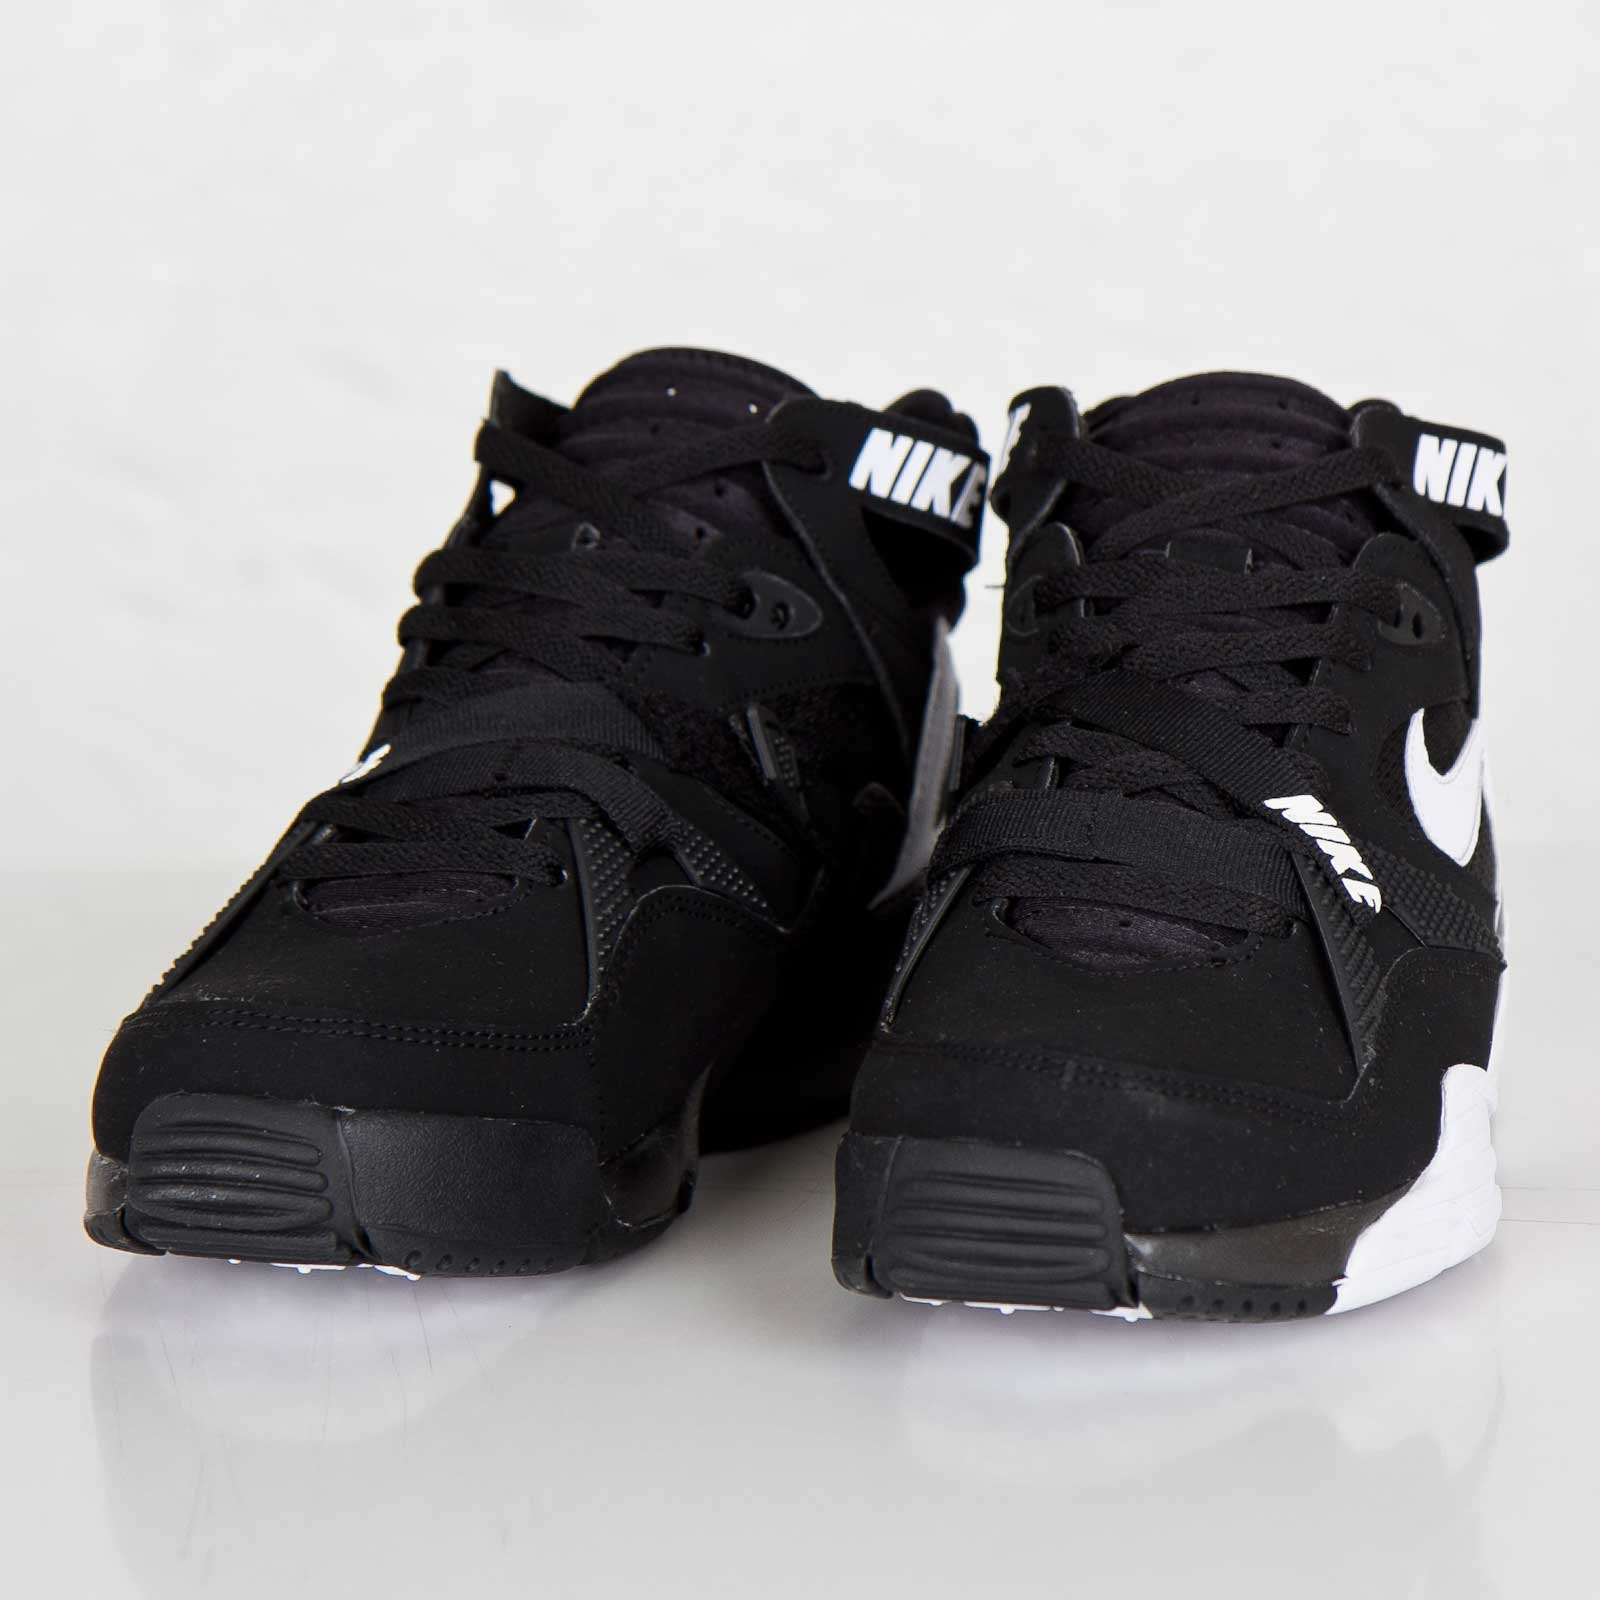 uk availability 99a02 ef2f1 Nike Air Trainer Max 91 Nike Air Trainer Max 91 ...